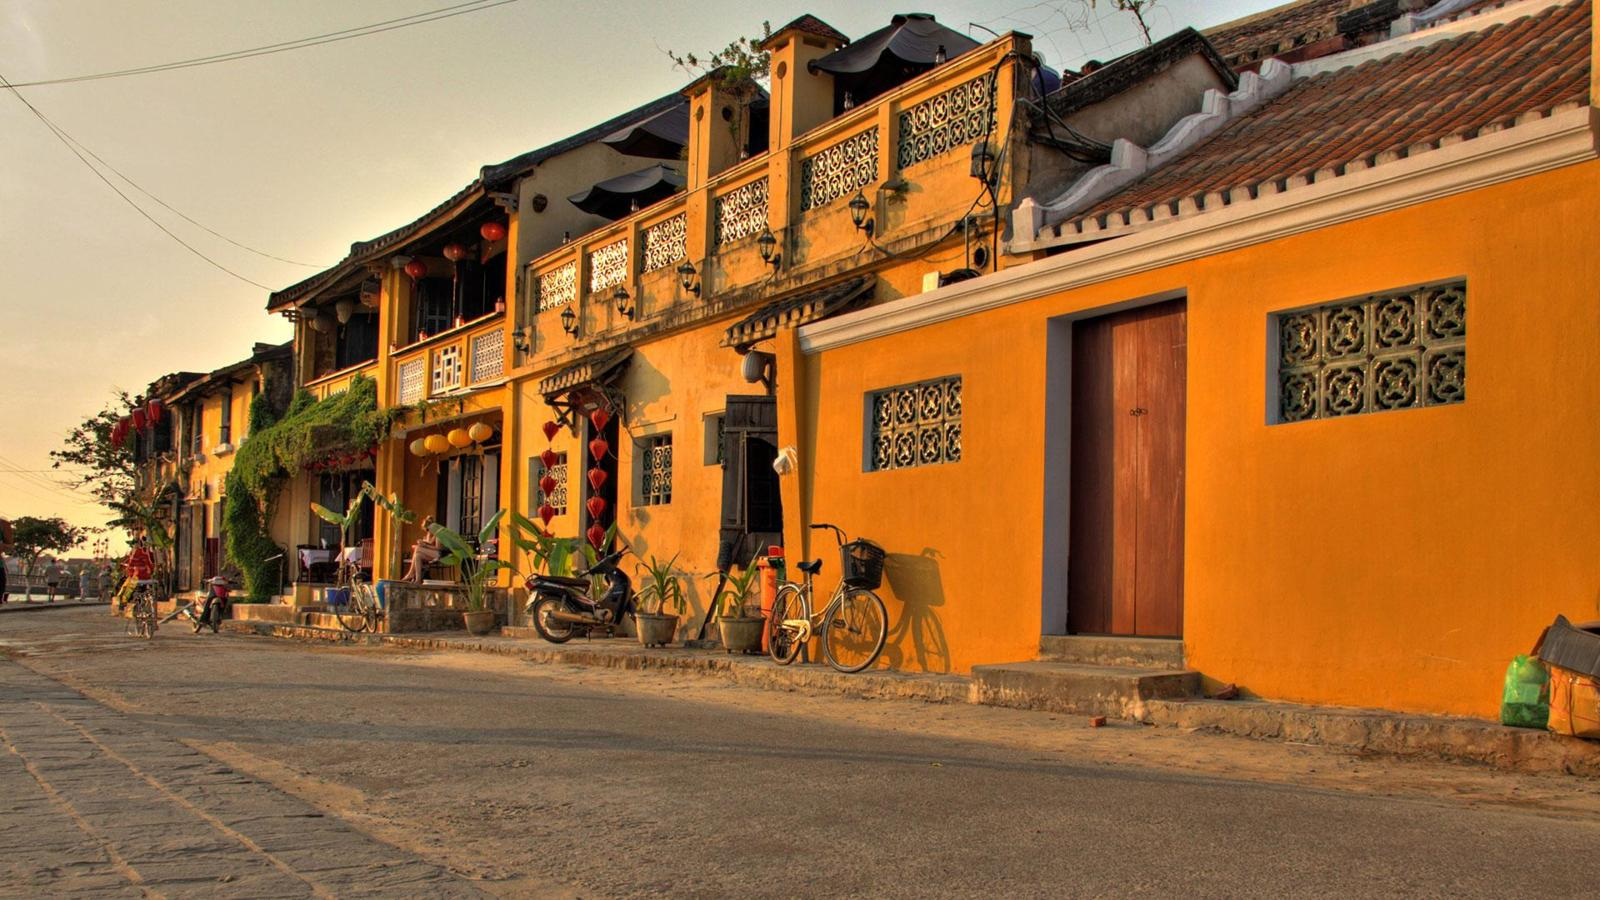 A bewitching town drenched in yellow - Ảnh minh hoạ 4